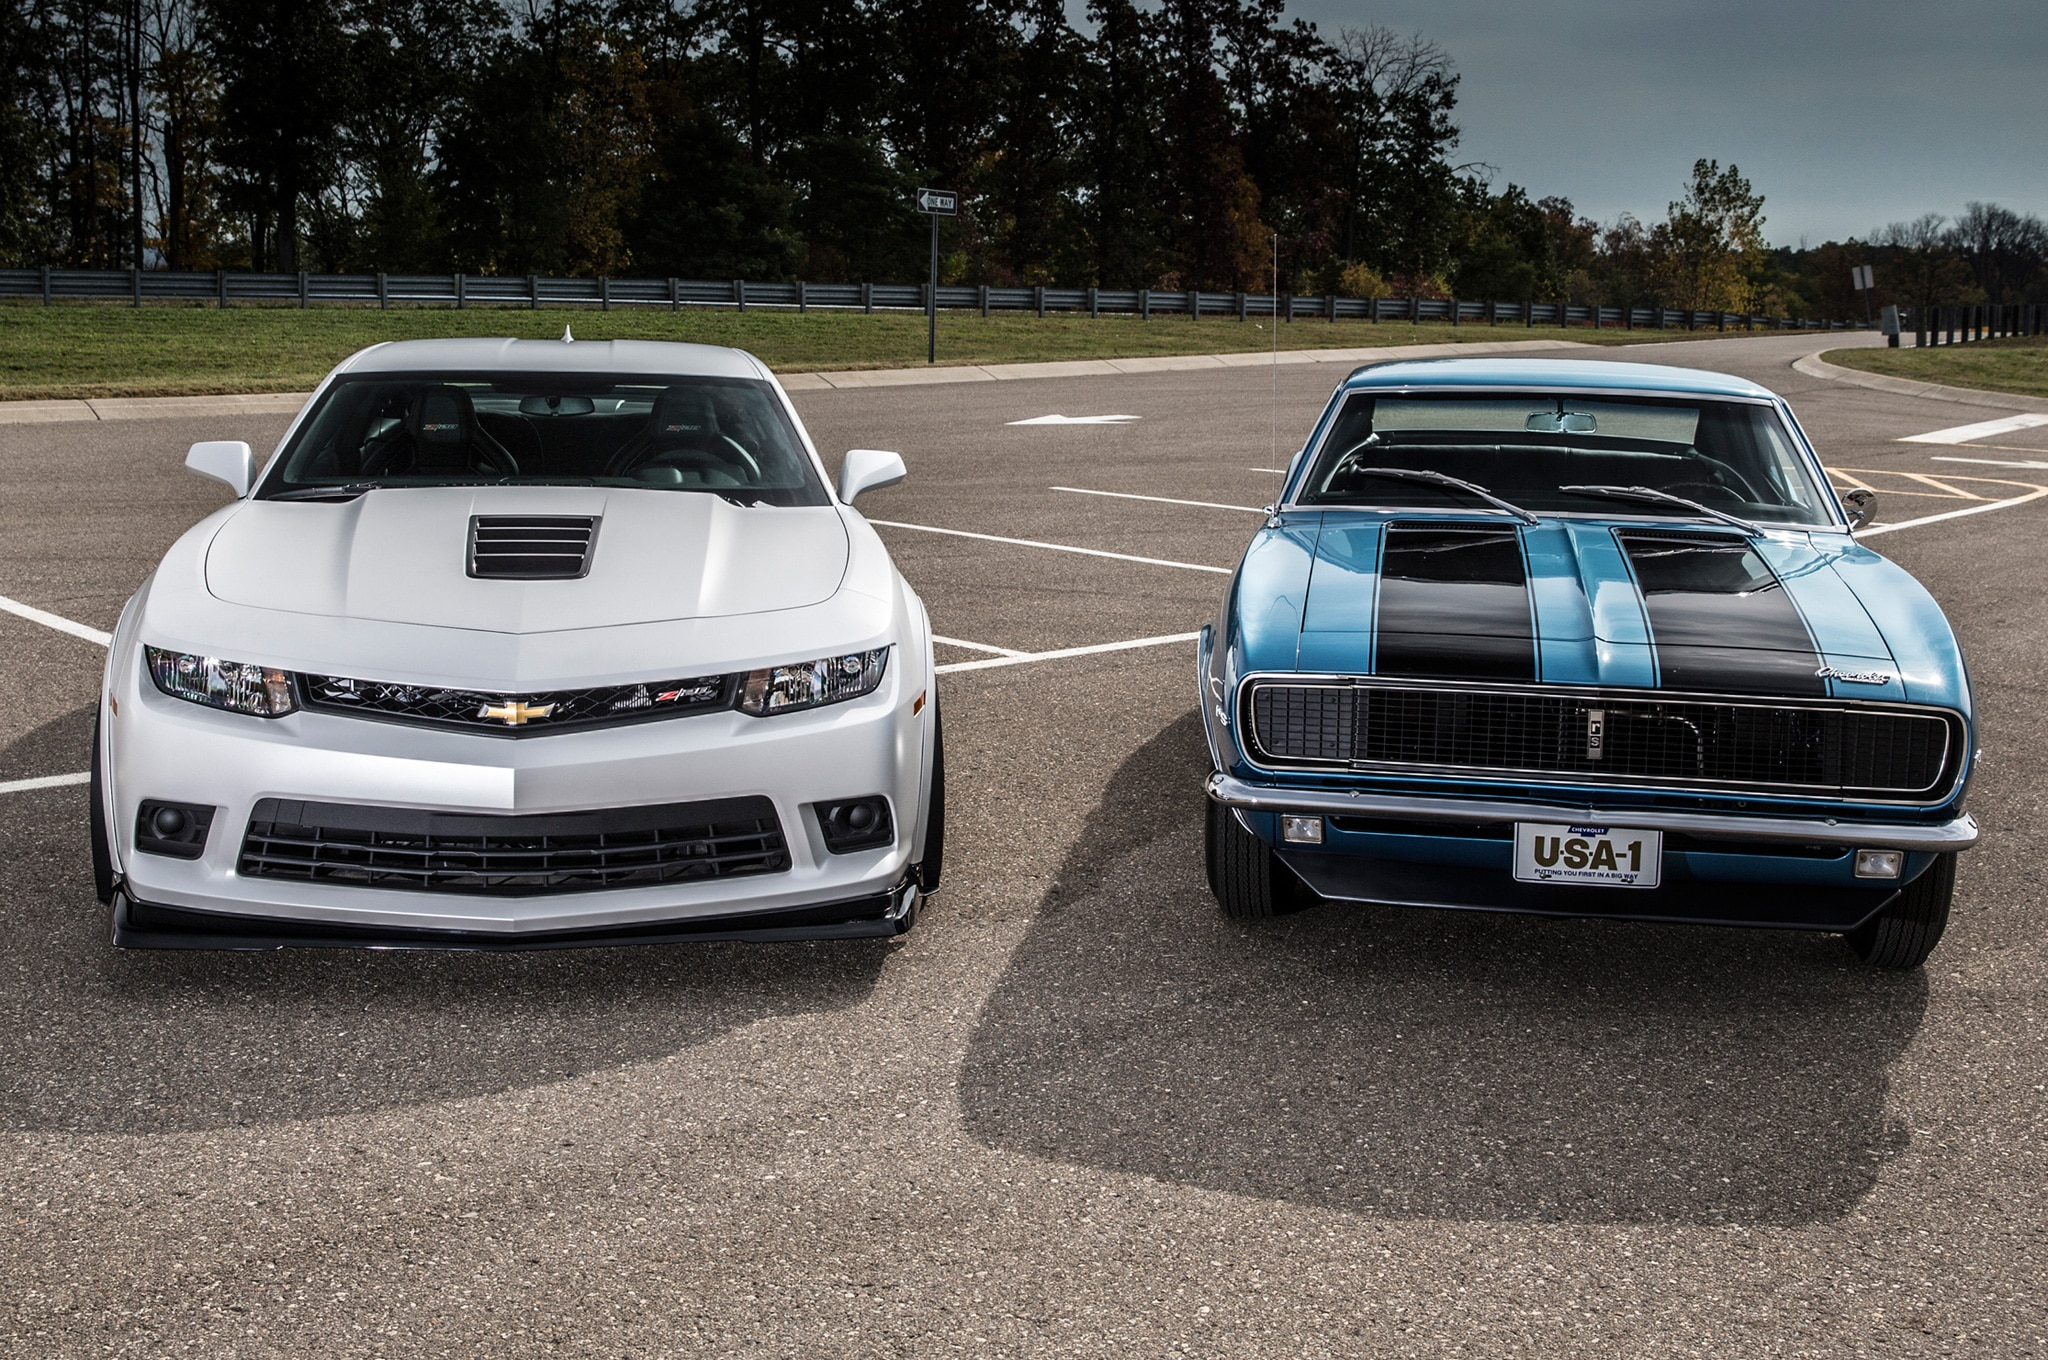 Then Vs Now 2014 Chevrolet Camaro Z 28 Vs 1967 Camaro Z